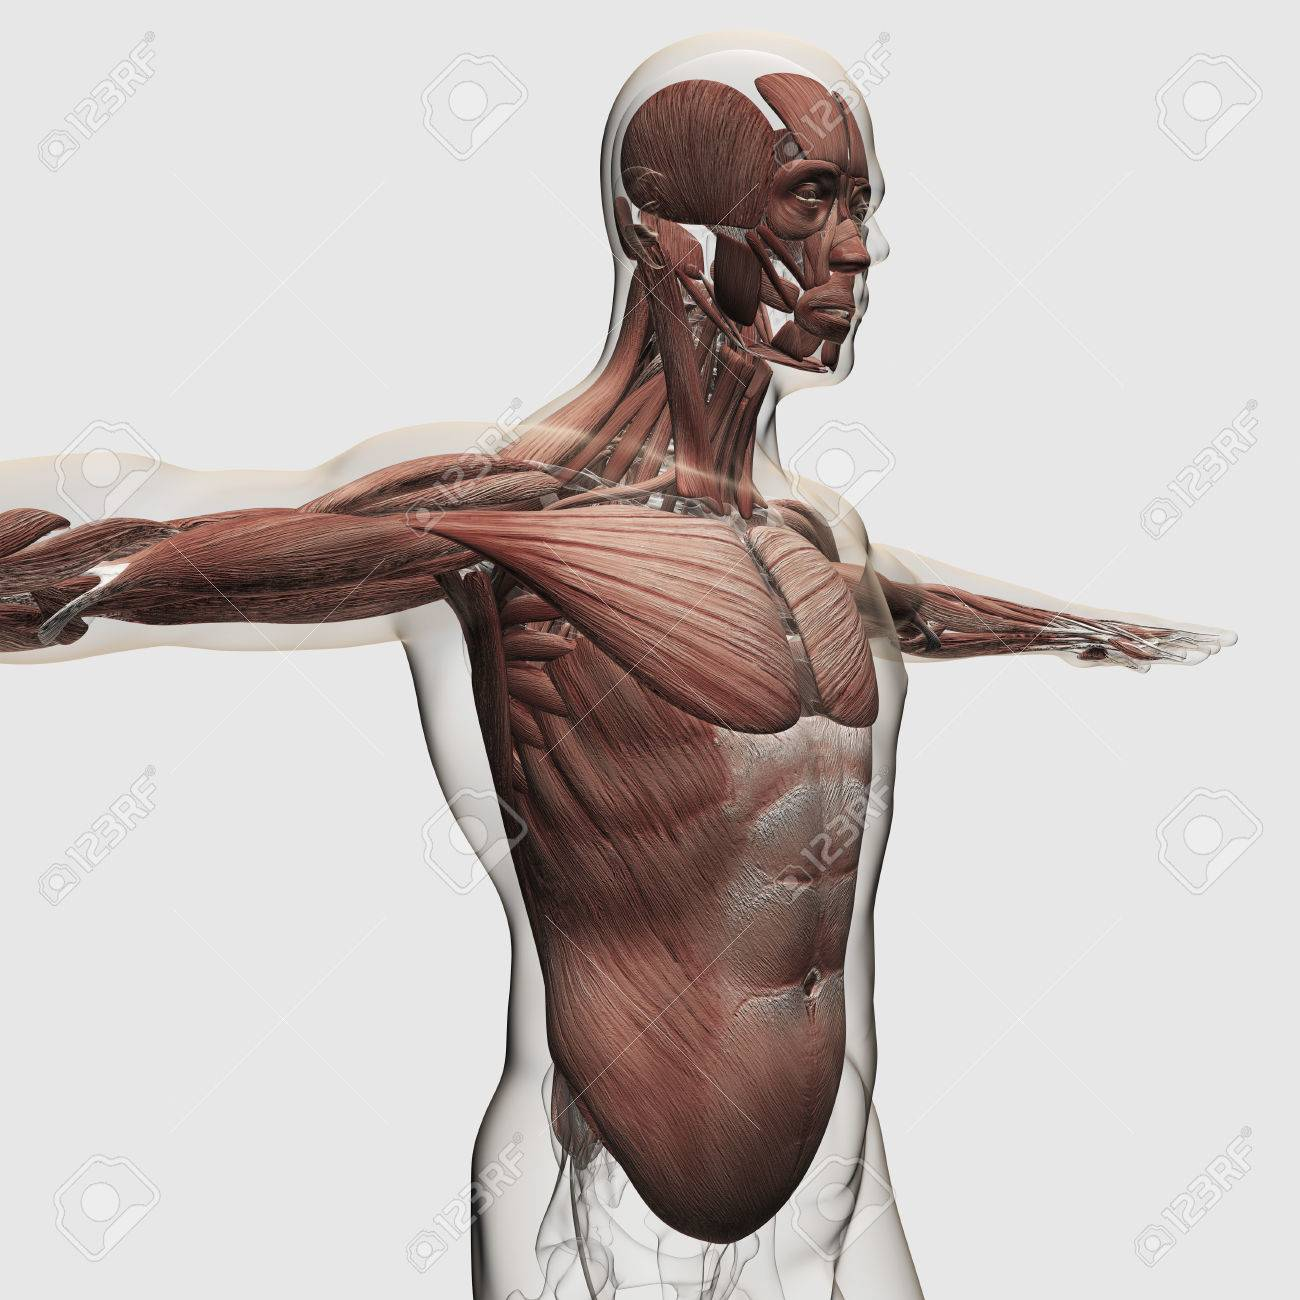 Anatomy Of Male Muscles In Upper Body, Side View. Stock Photo ...